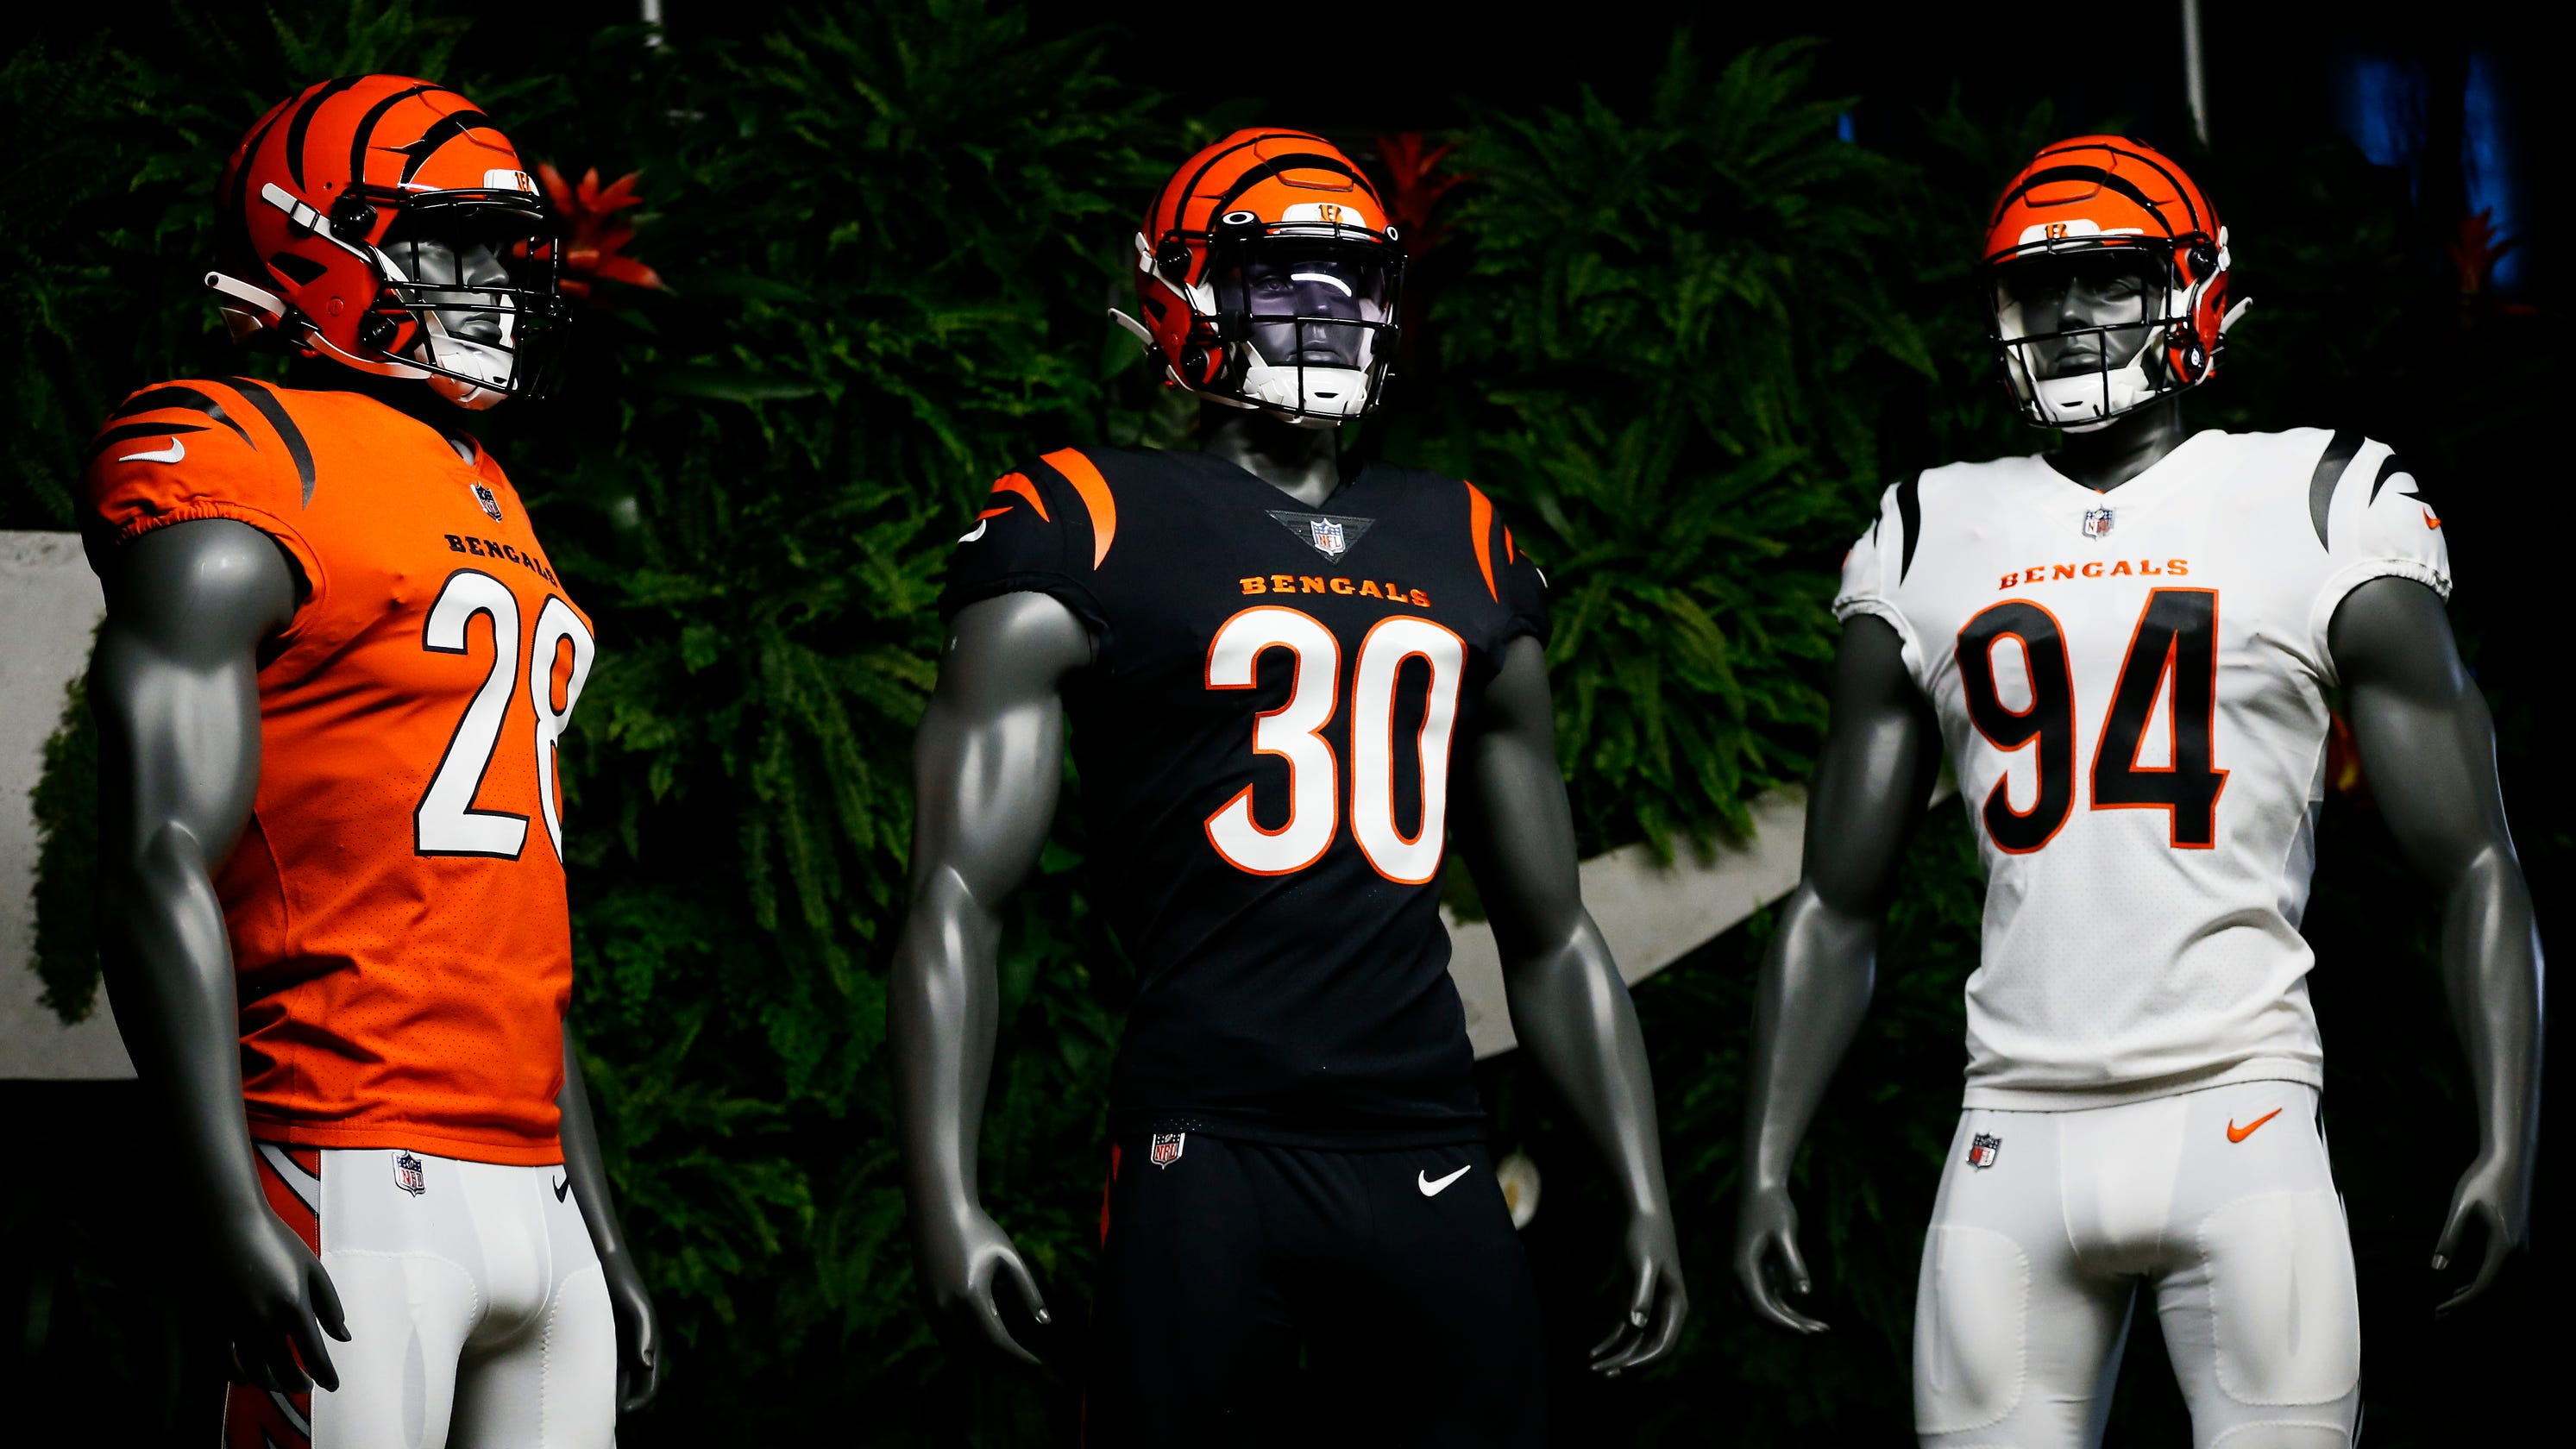 Cincinnati Bengals unveil new uniforms for 2021 season